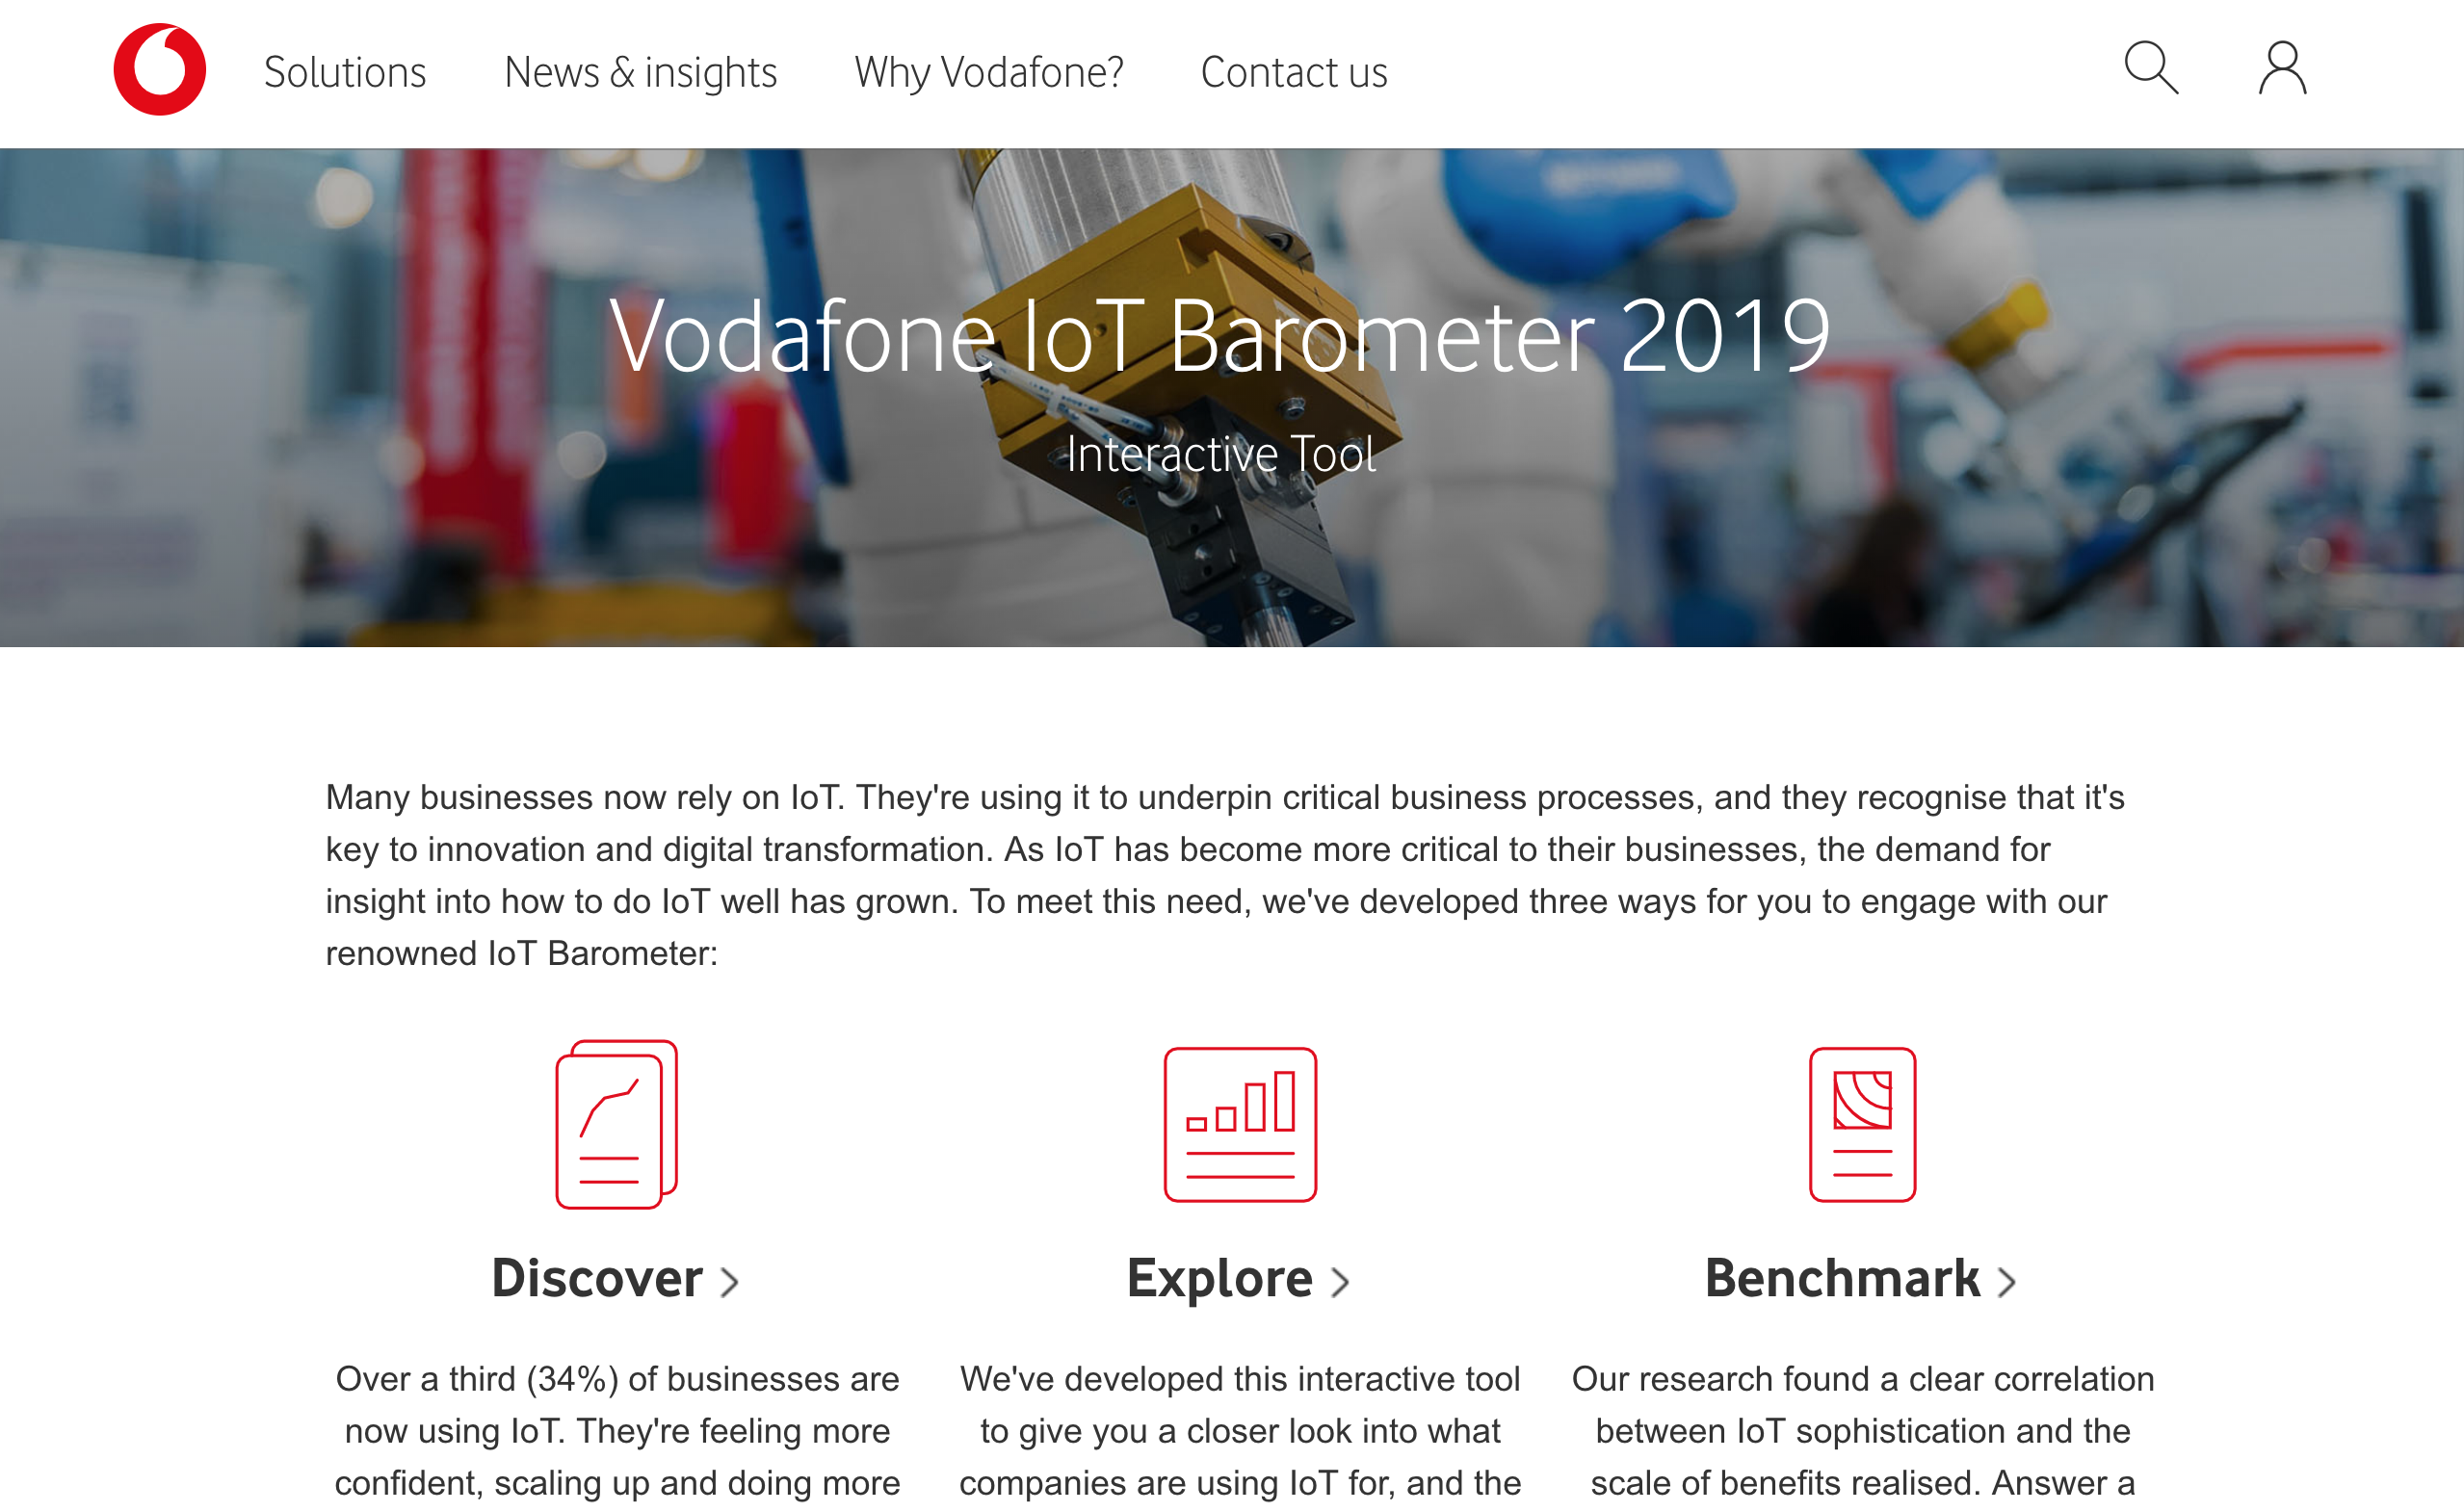 Screenshot from IoT Barometer interactive tool website